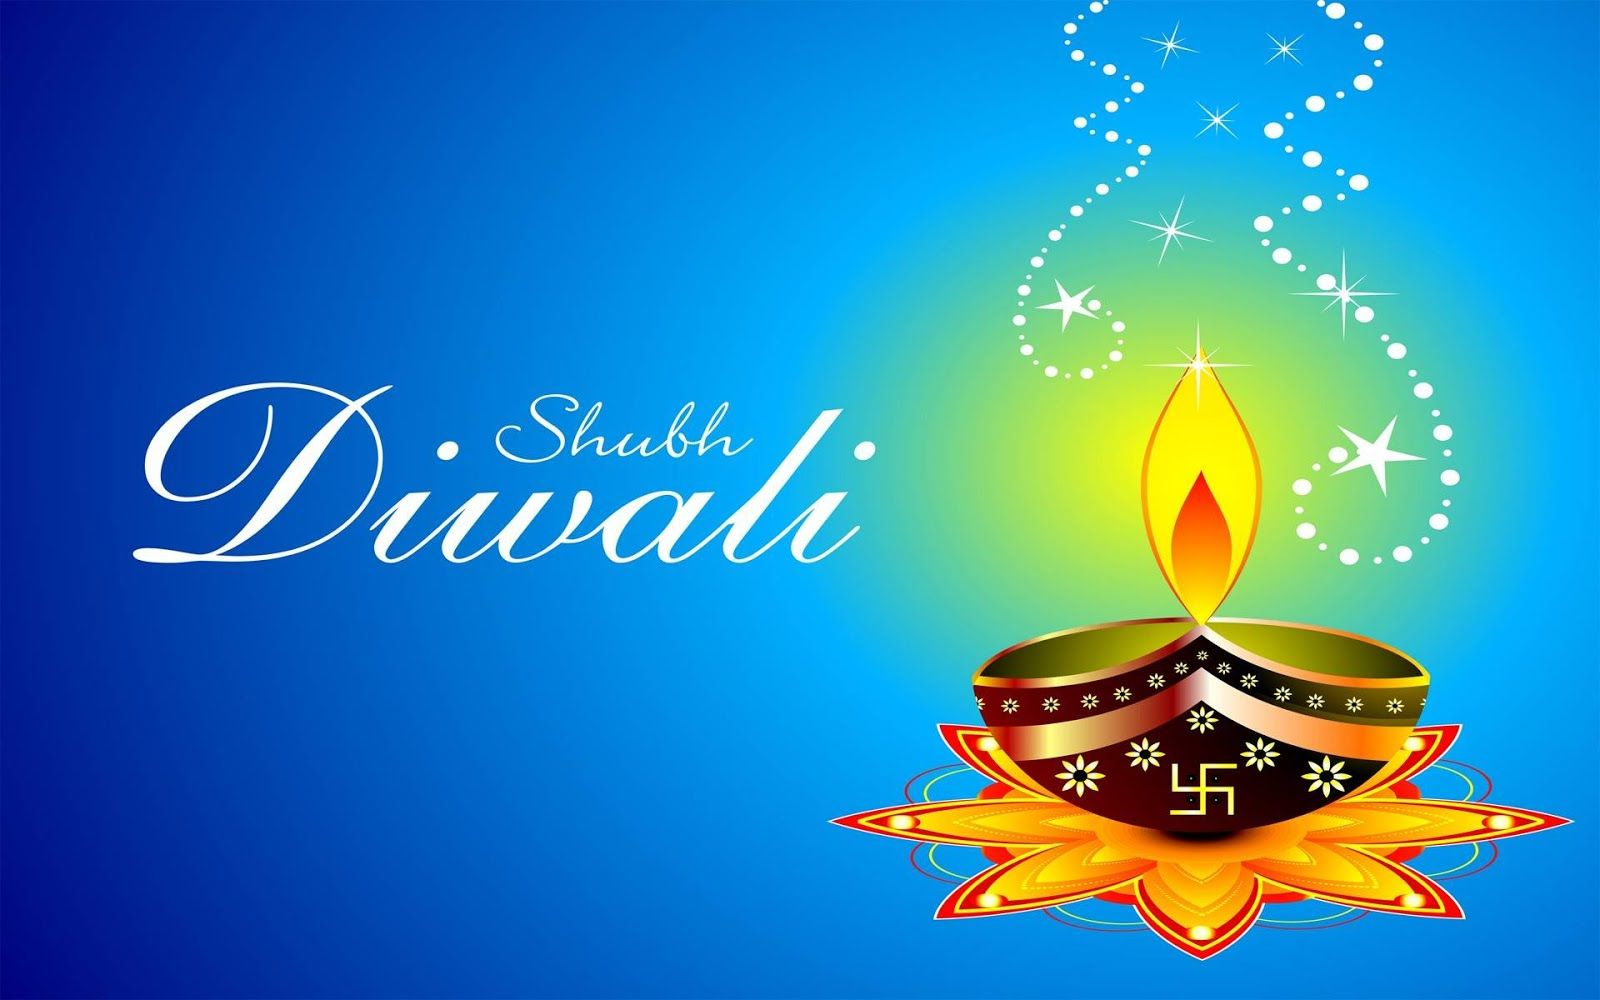 Diwali greetings messages pictures